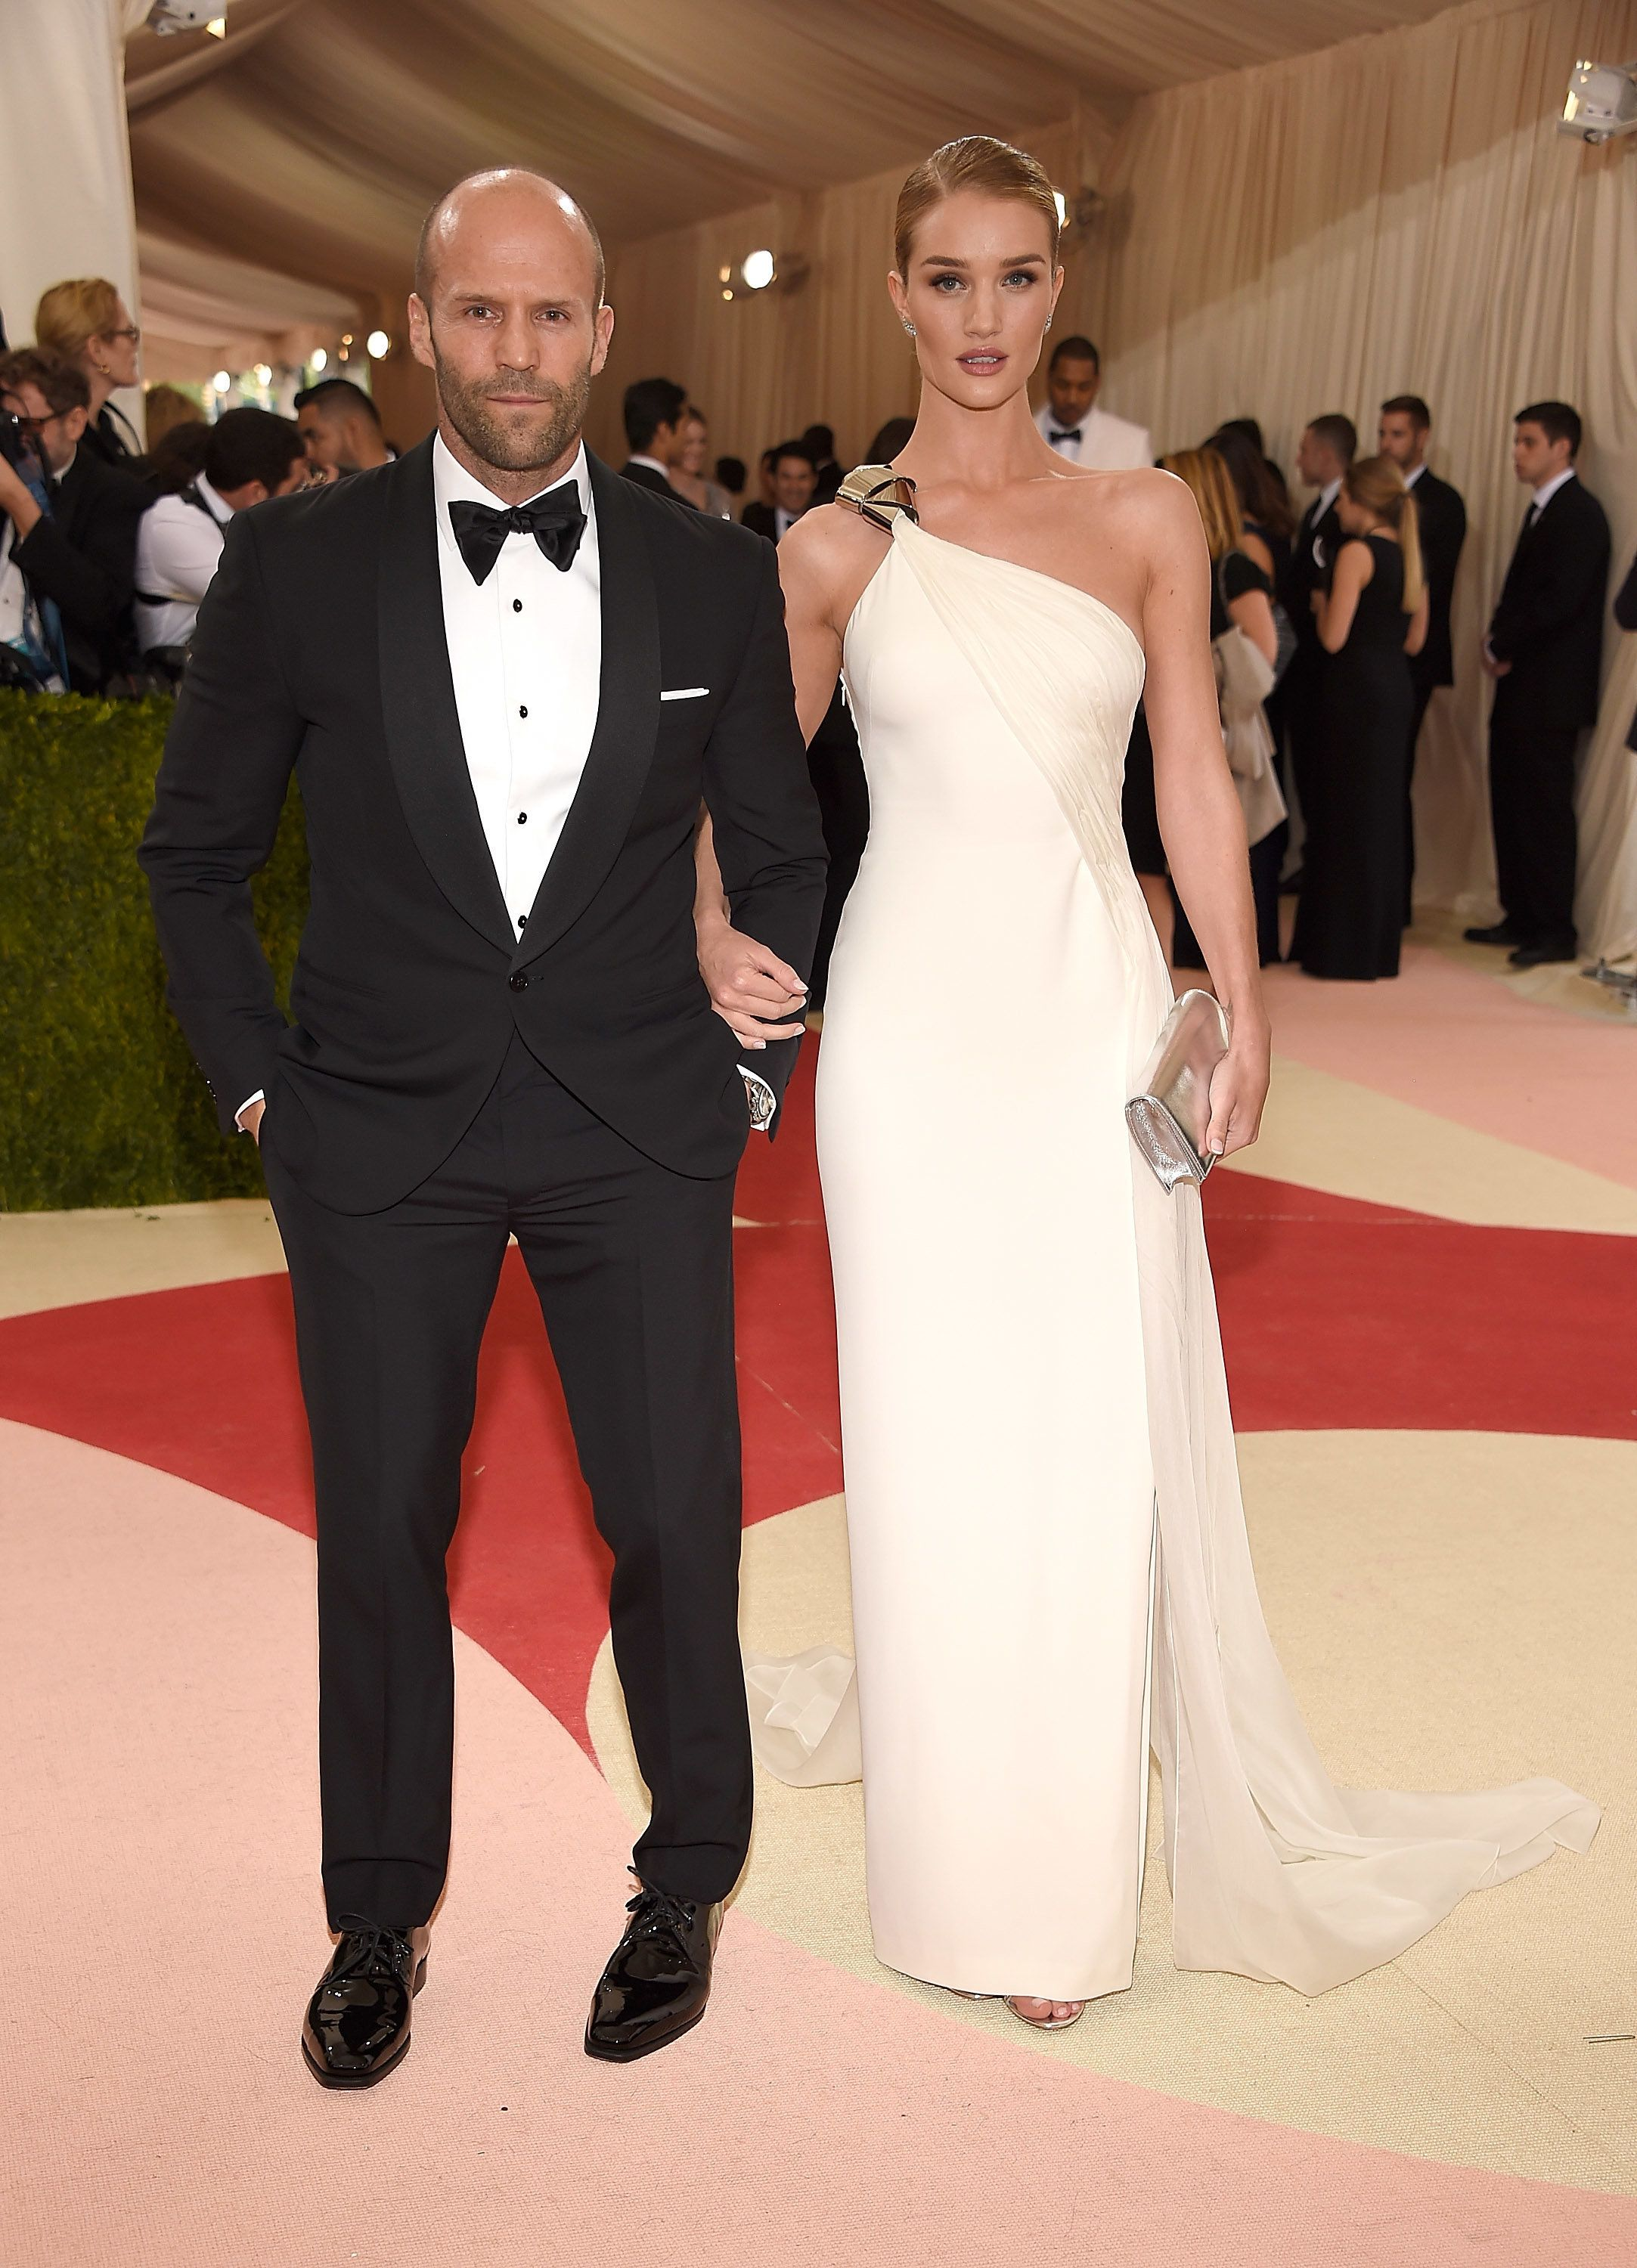 Jason Statham And Rosie Huntington-Whiteley Are Expecting Their First